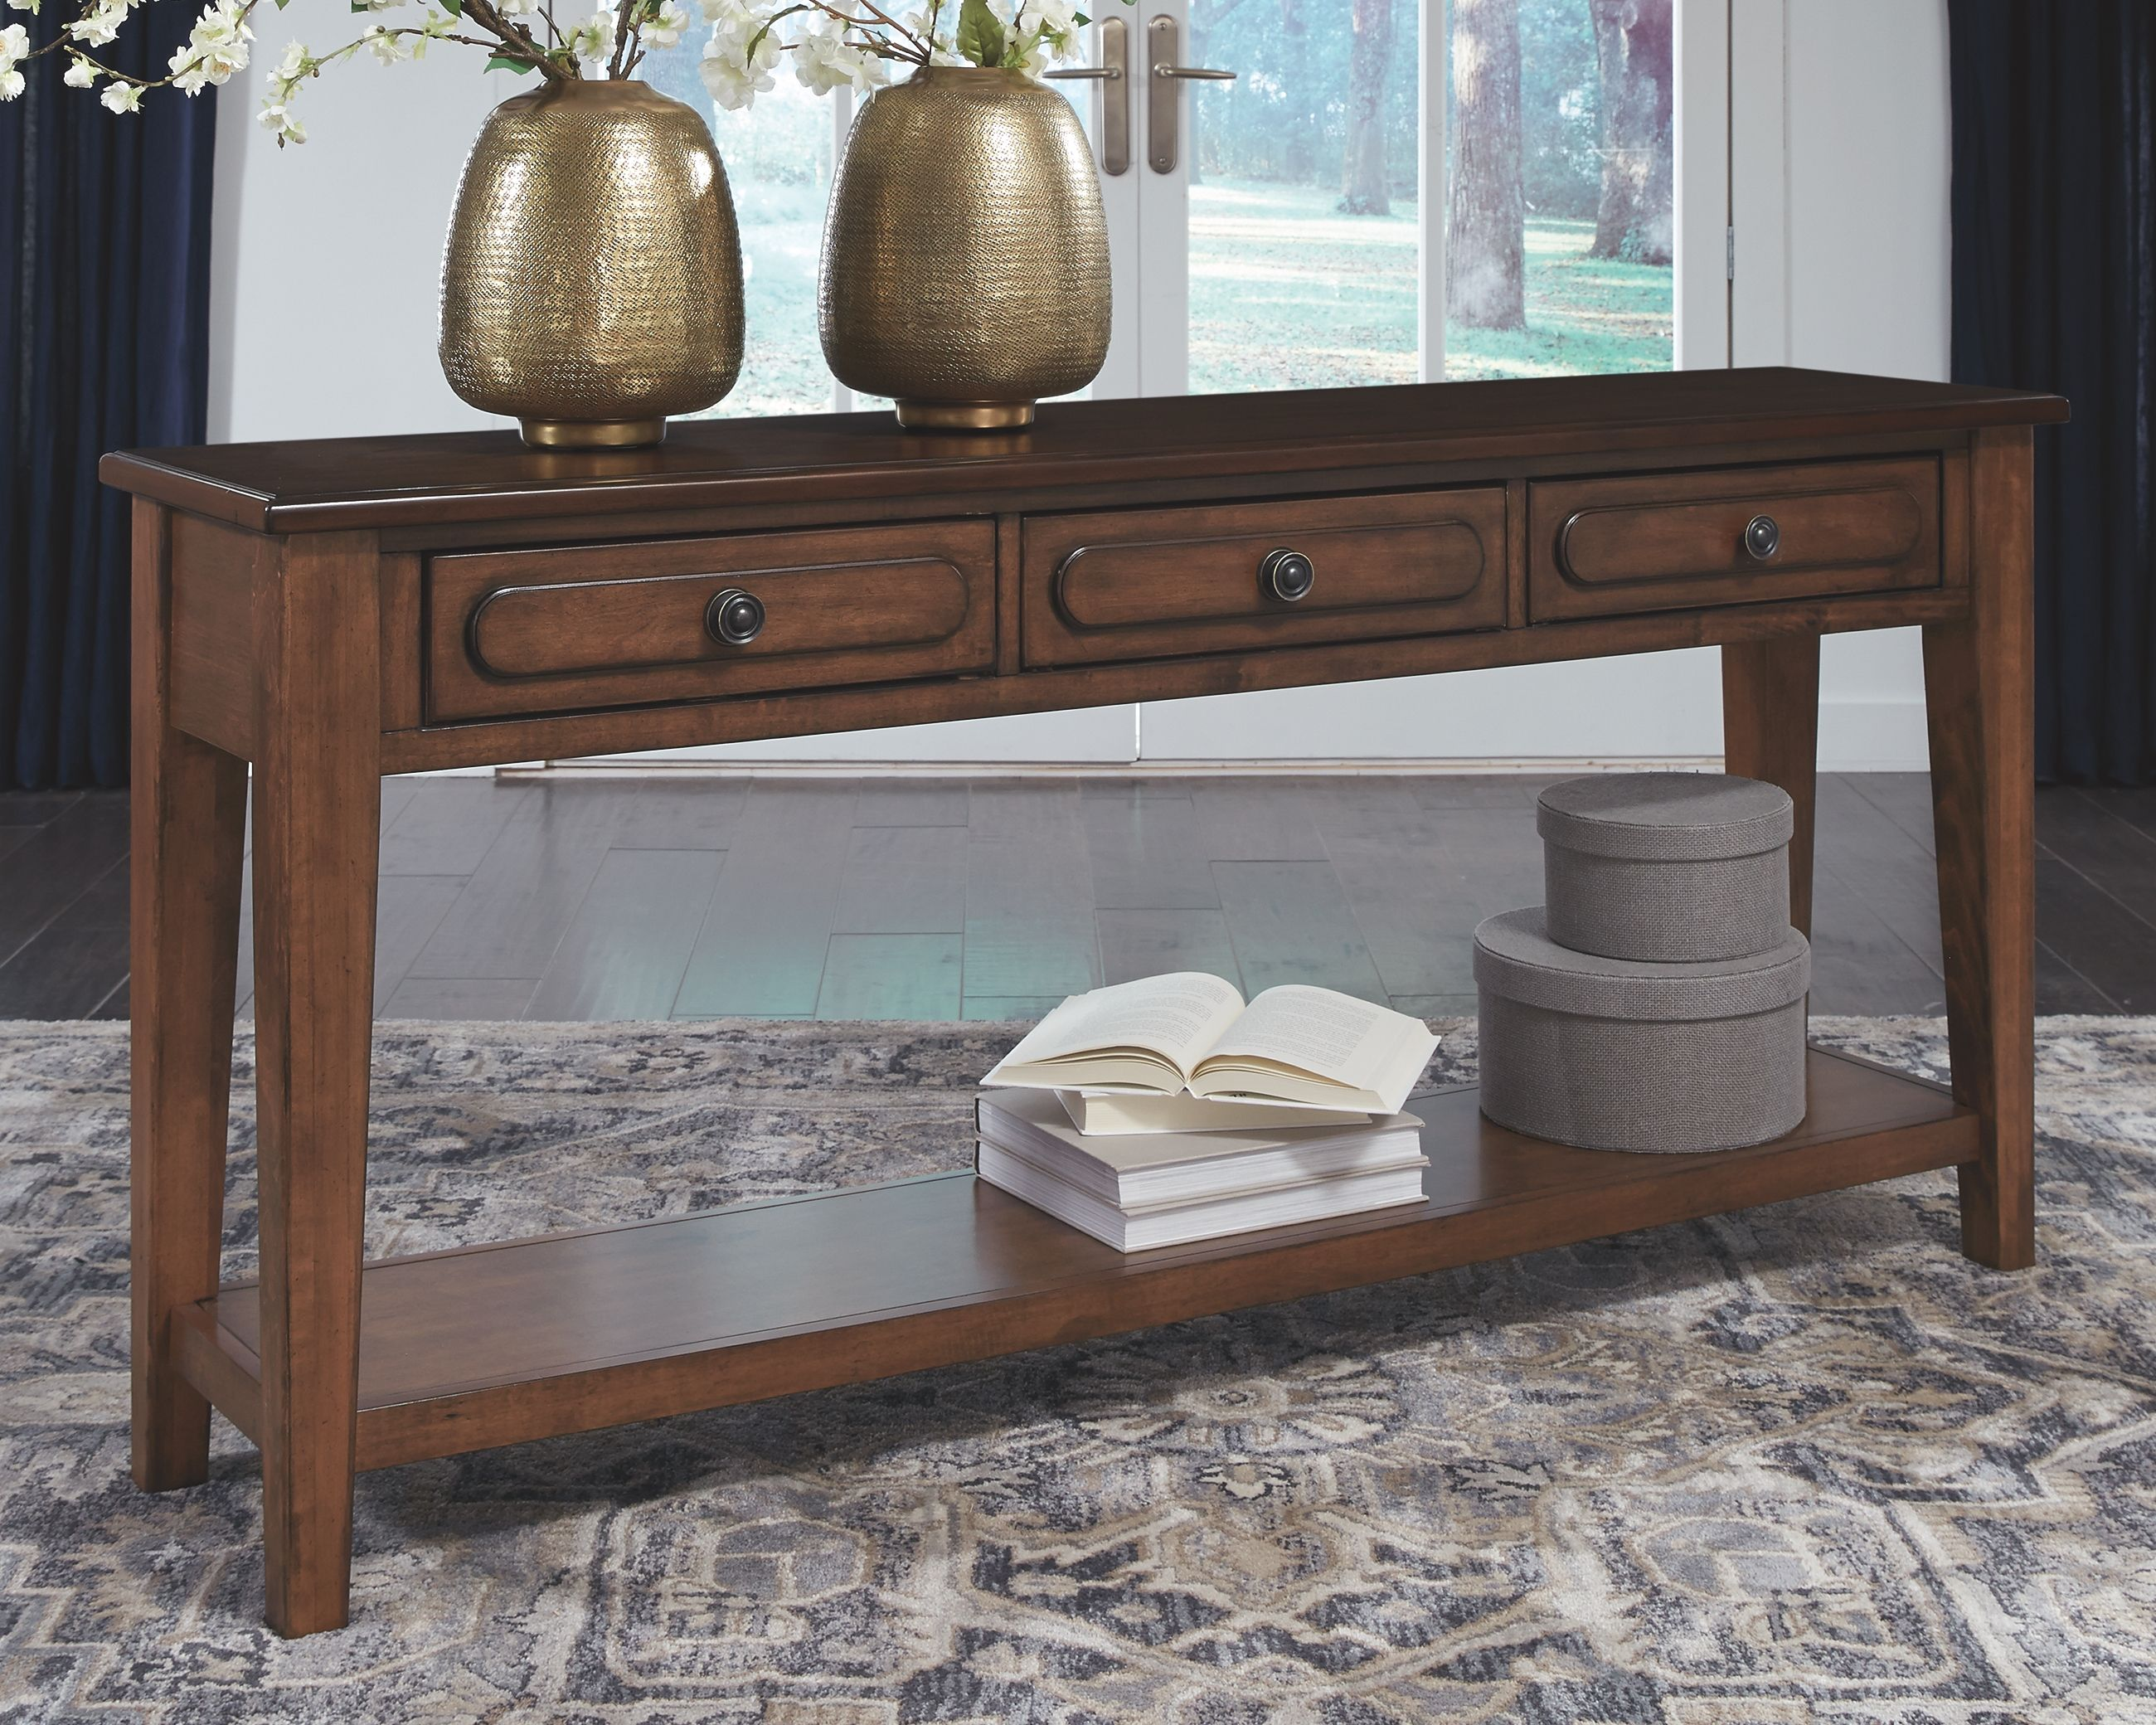 Pin On Dining Table, Ashley Furniture Console Table